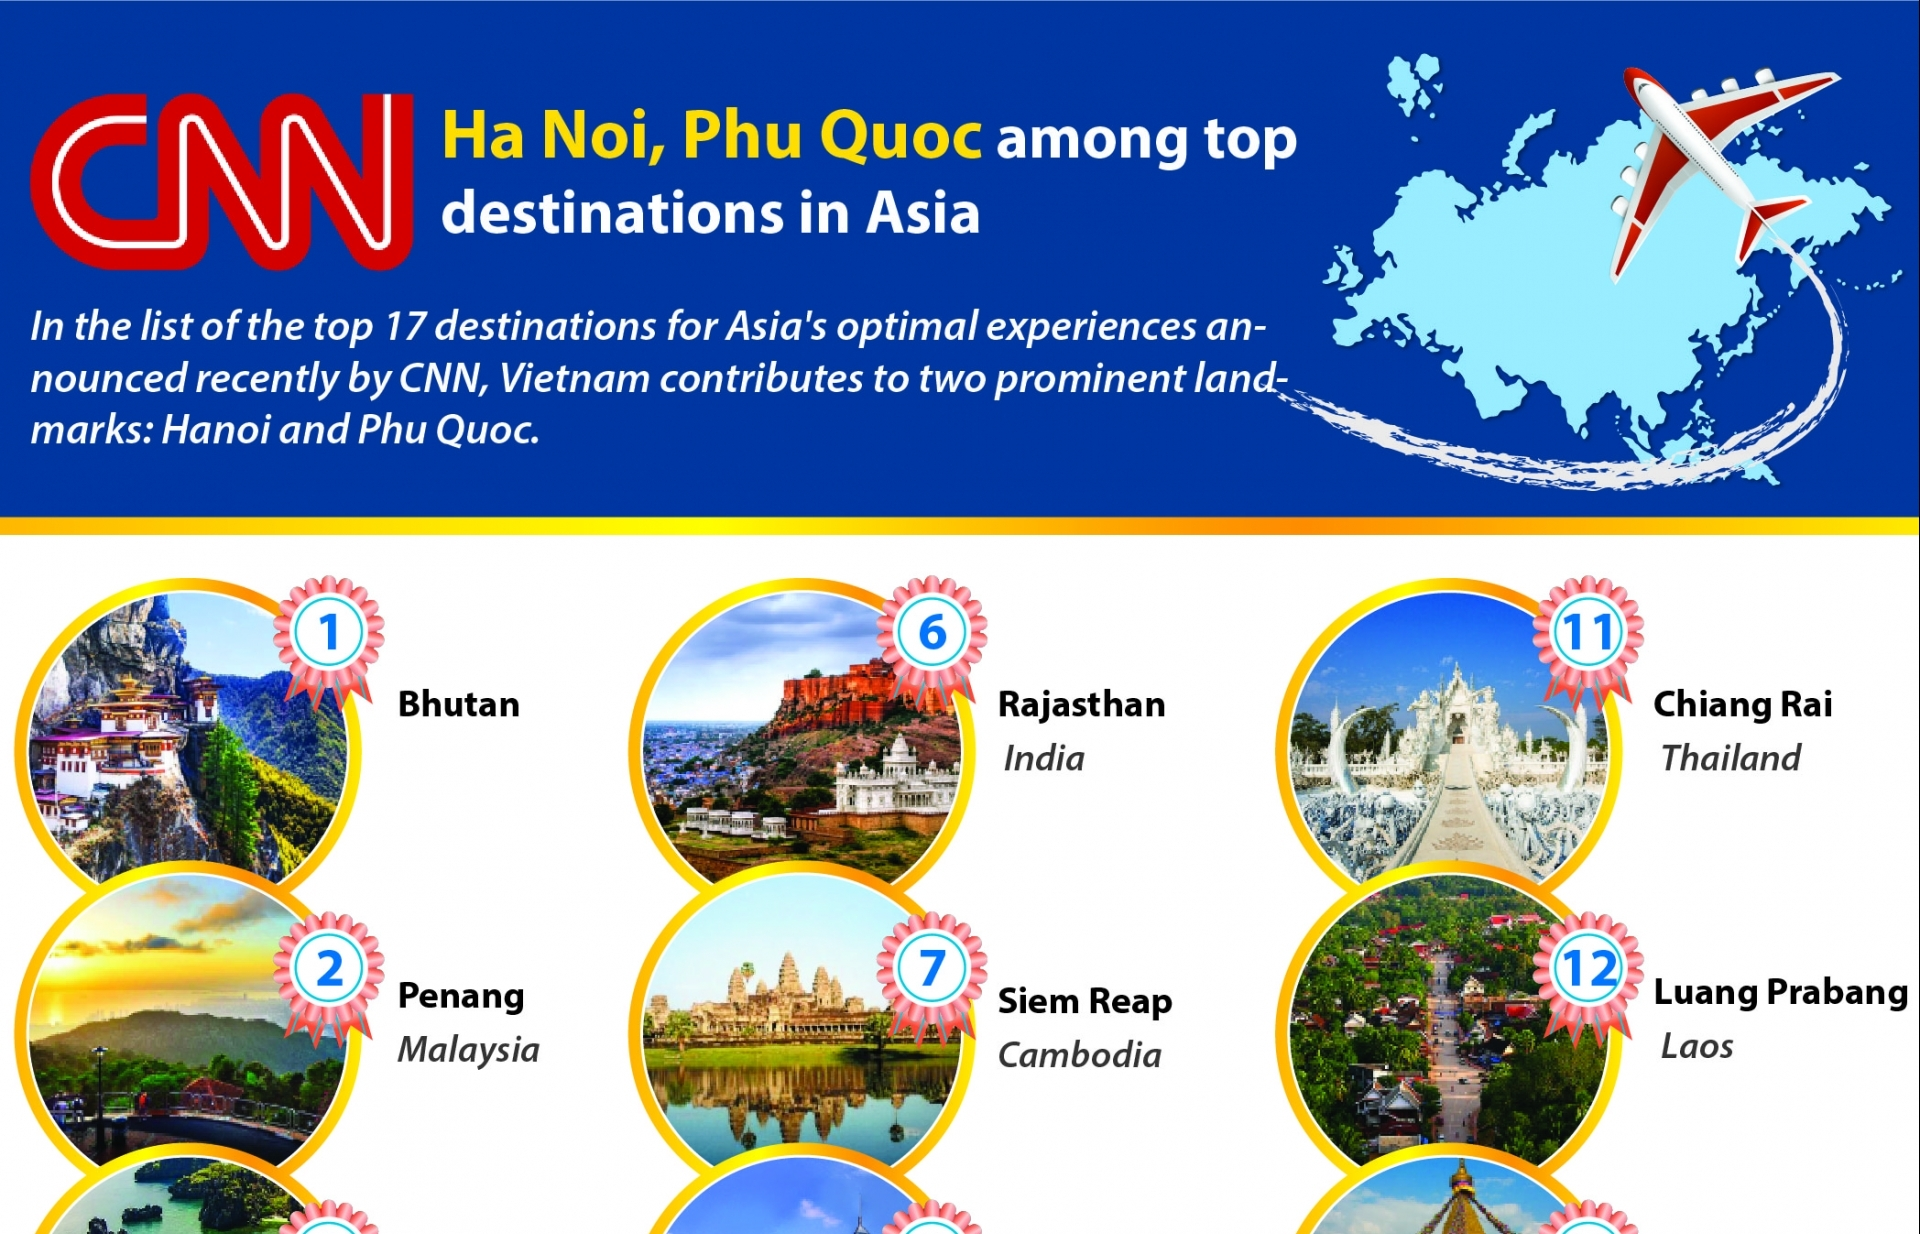 hanoi phu quoc among top destinations in asia